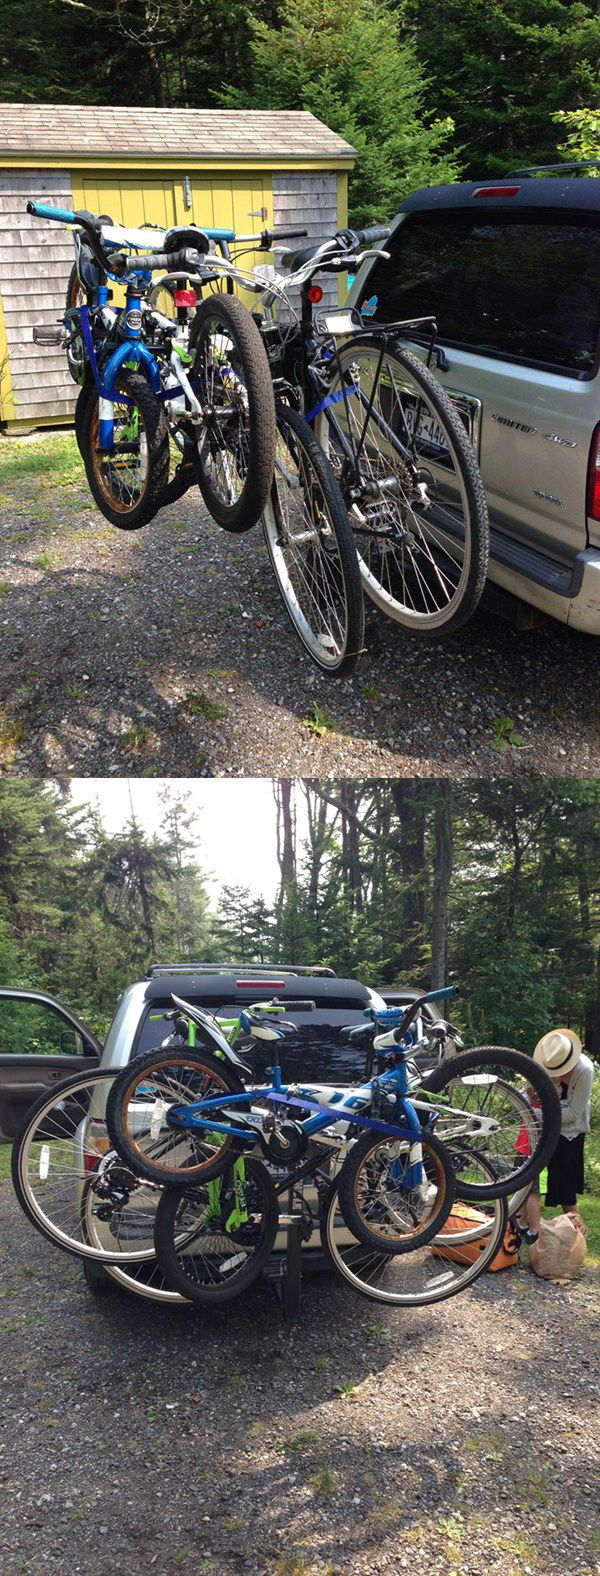 Follow the ULTIMATE fit guide for a bike rack that works best with your car! Chose from hundreds of models - whether you drive an SUV, Minivan, Truck or RV- you will find the right bike rack the first time. Great for biking getaways, family adventures and vacations.  http://www.etrailer.com/Bike-Rack